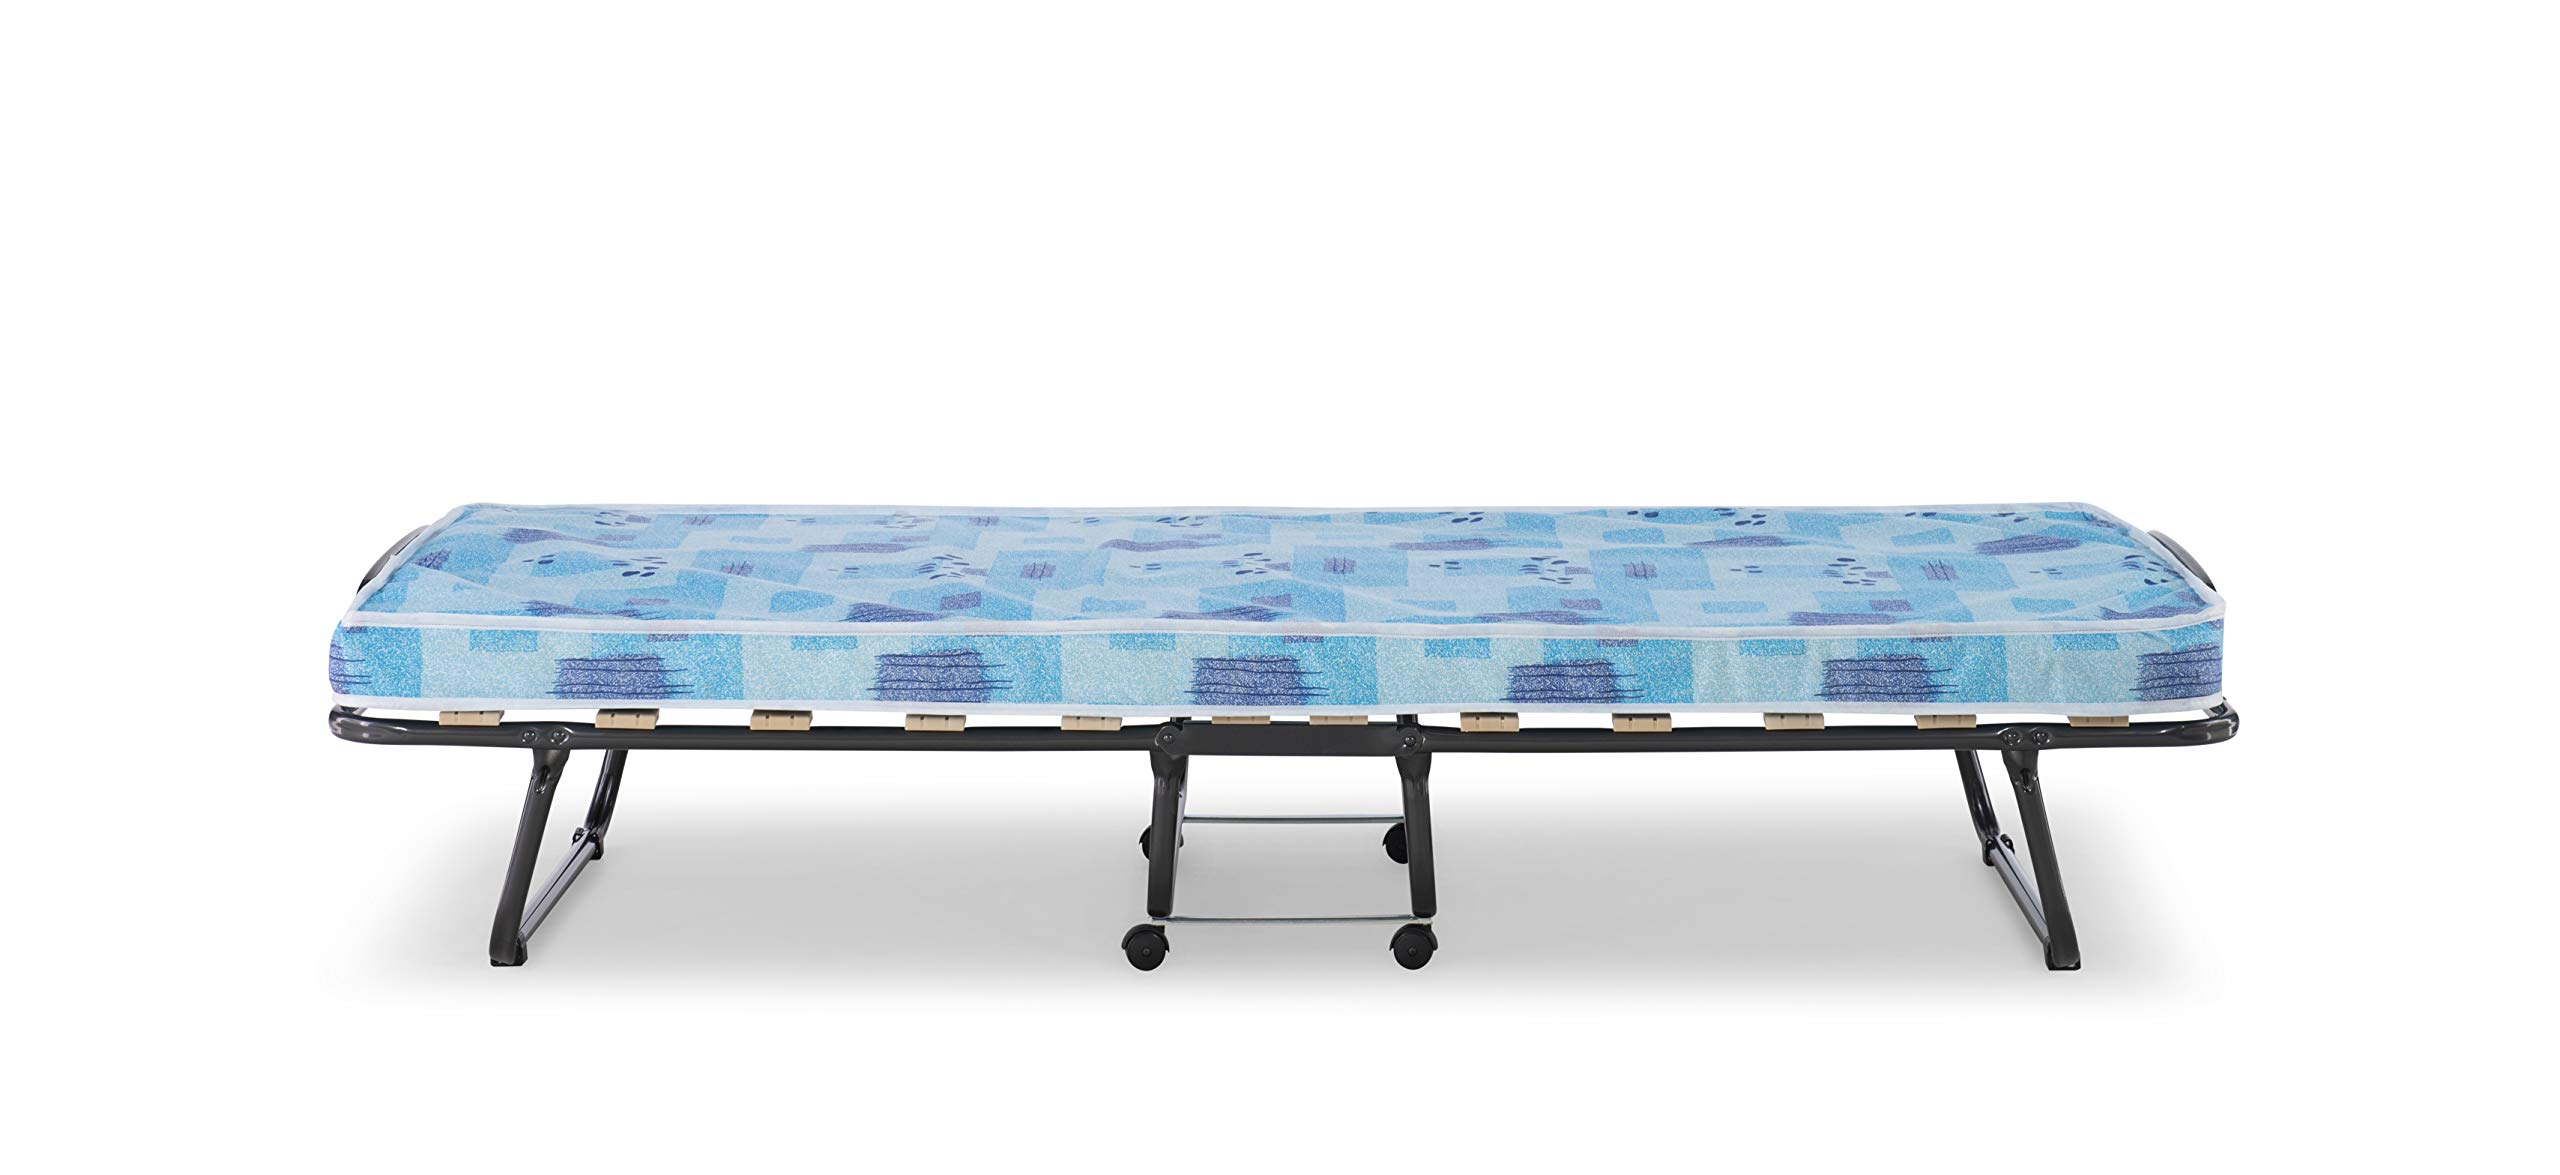 Linon Folding Bed, Roma, Cot, Blue And White